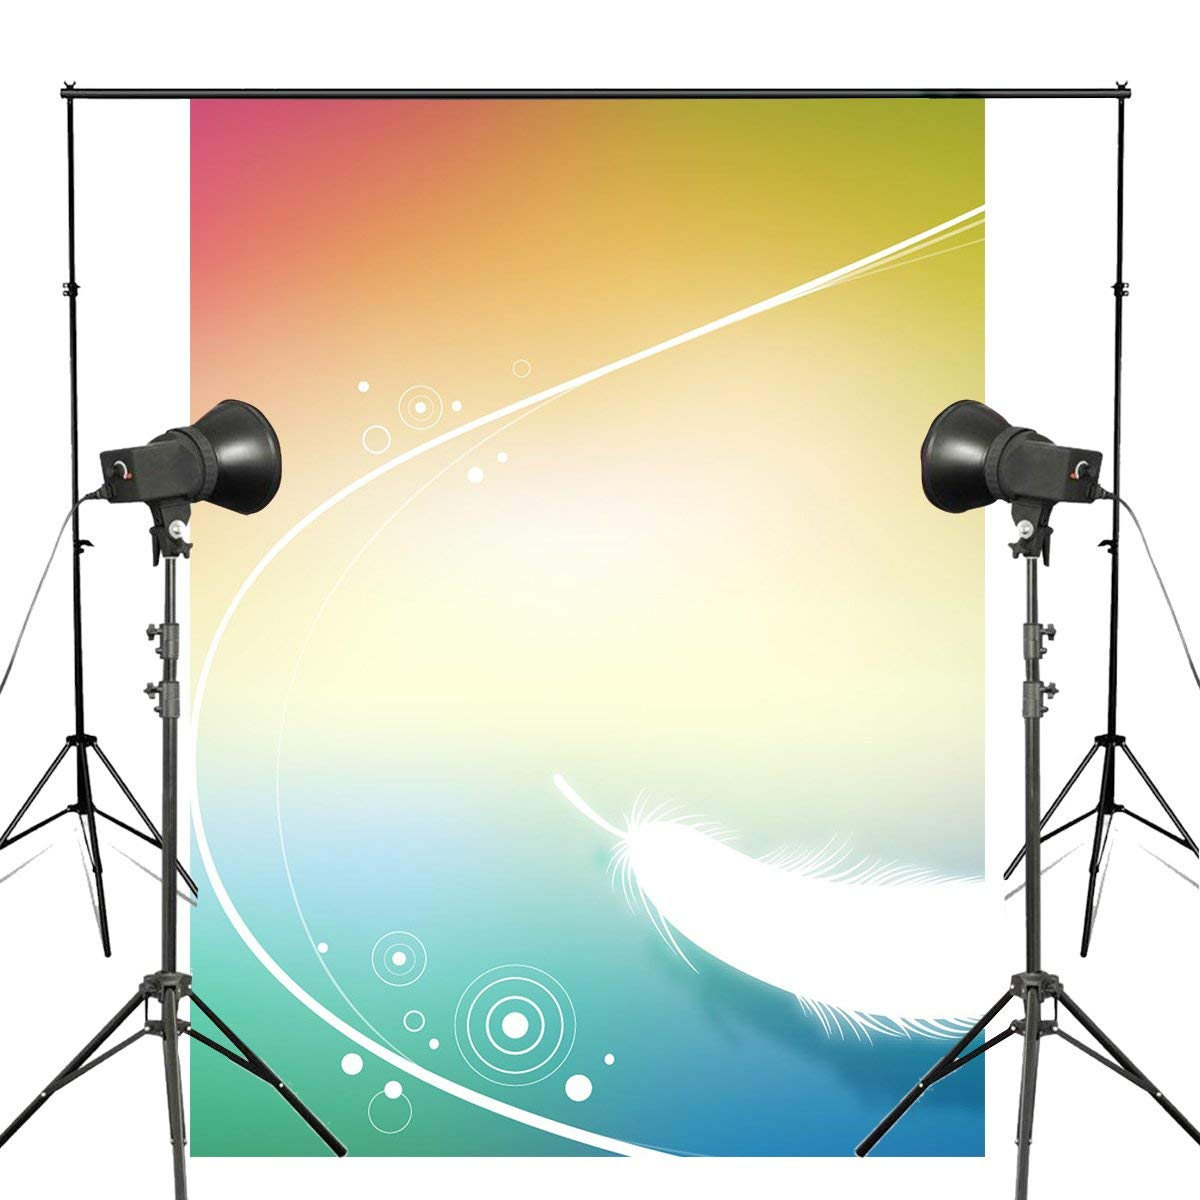 Exquisite Fluffy White Feather Background Photography Colorful Backdrops for Picture Kids Photo Studio Background 5x7ft-in Photo Studio Accessories from Consumer Electronics